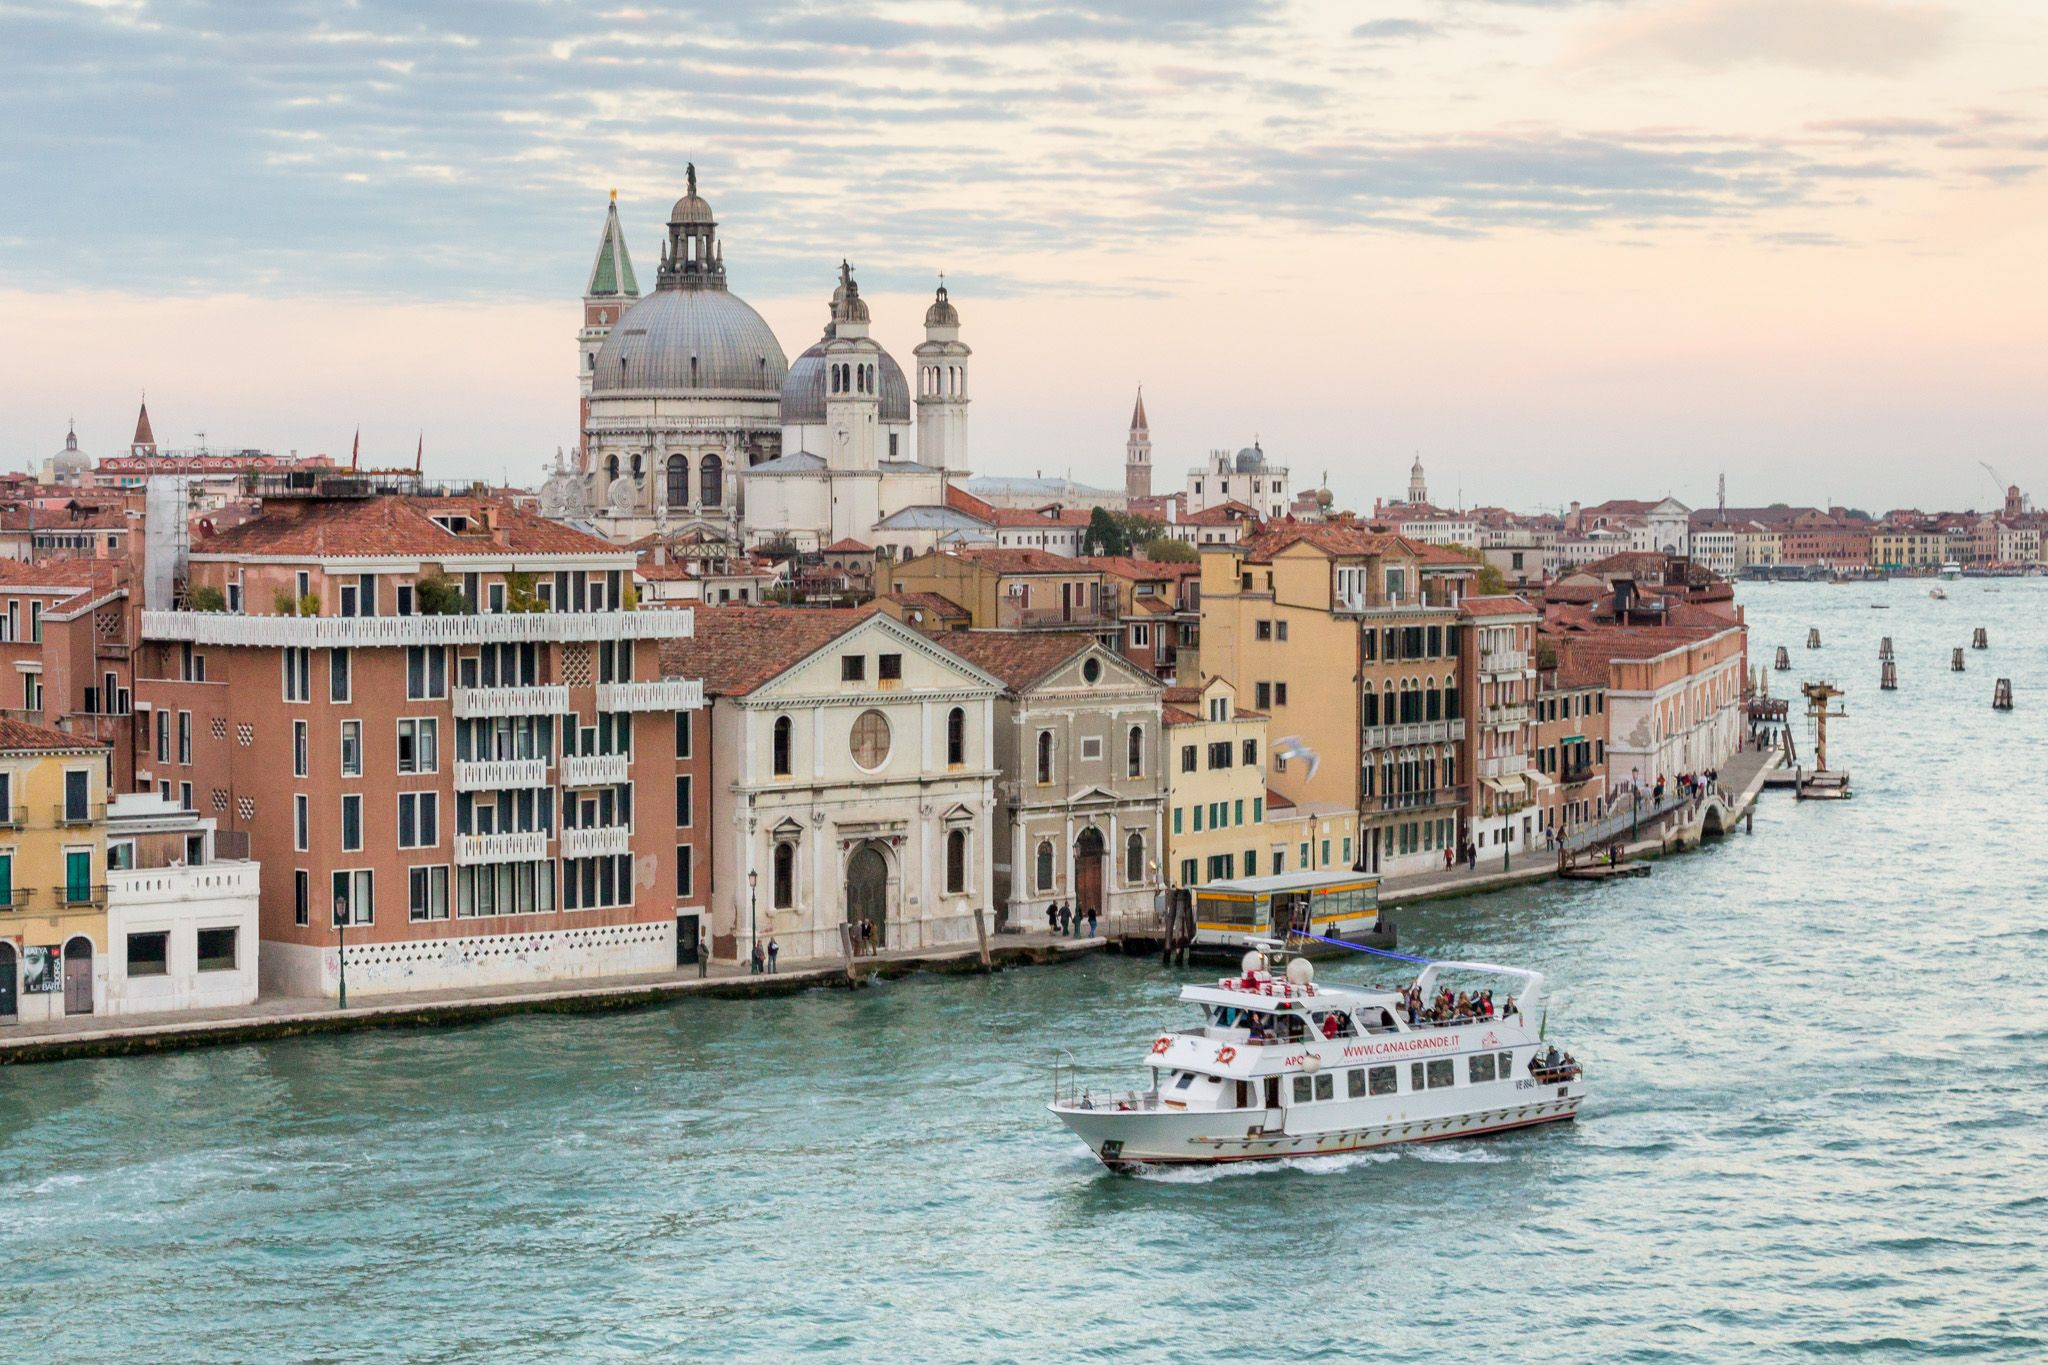 view of Venice from the Giudecca Canal